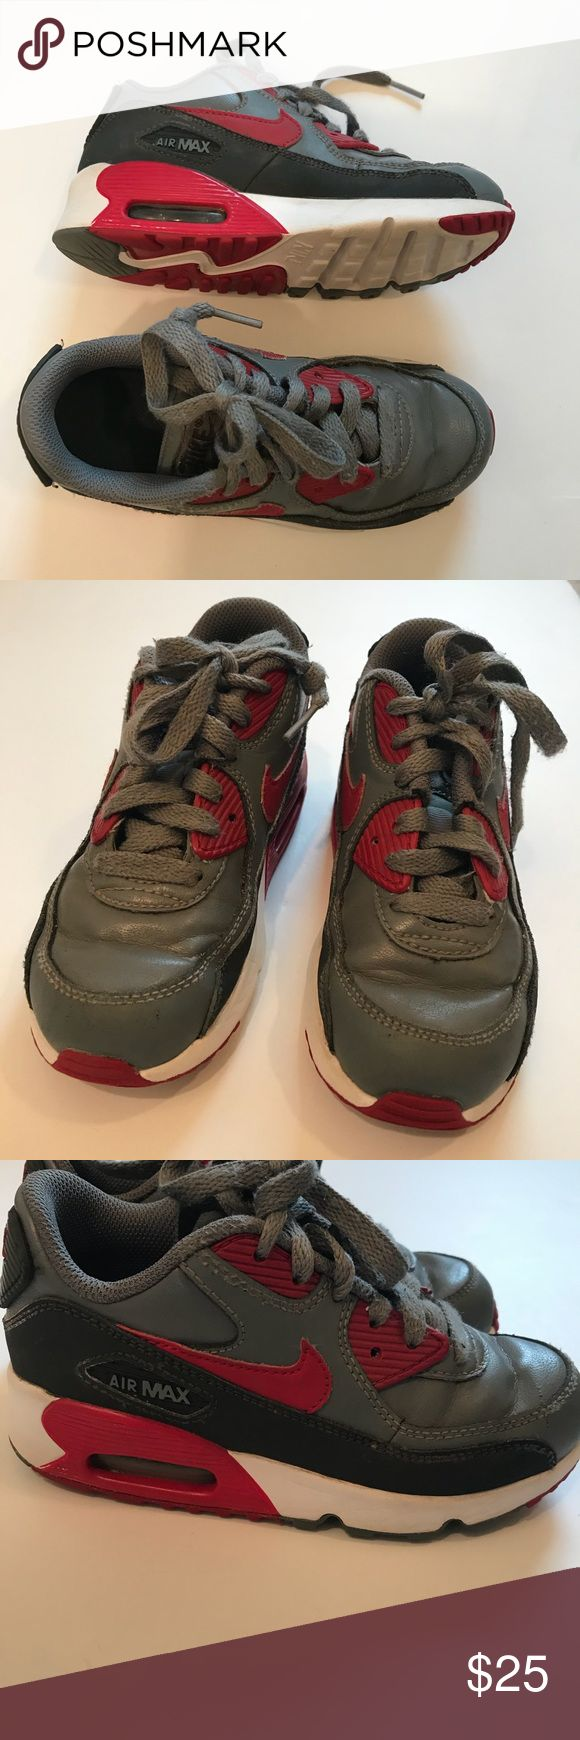 Nike Air Max Sneakers Nike. Air Max Sneakers. Size 12 C. Shoes are in good used condition. A small amount of red color has come off the side. (See photo). Nike air max Shoes Sneakers